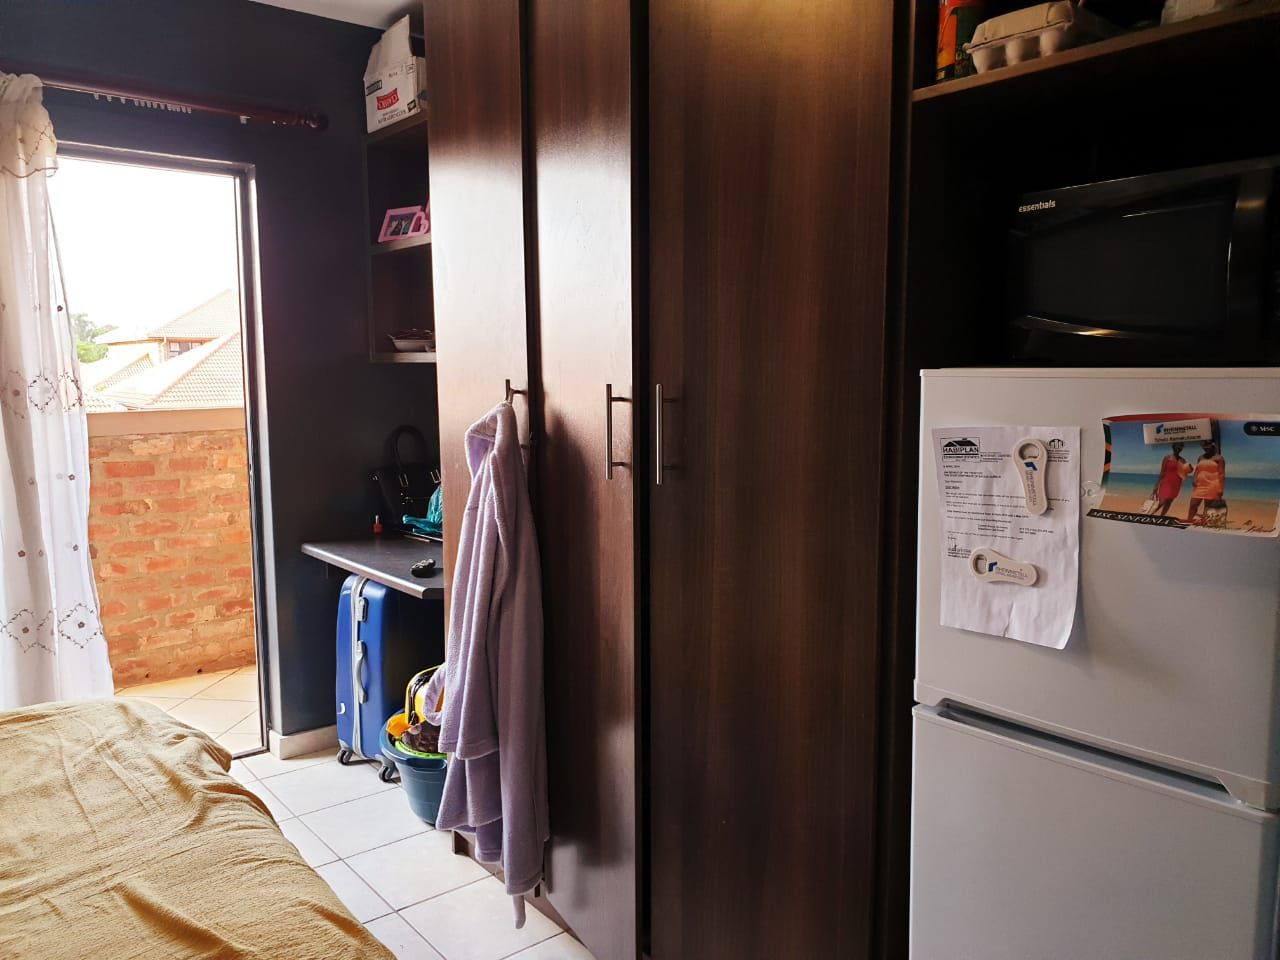 Apartment in Bult - WhatsApp Image 2019-10-08 at 11.41.48 (1).jpeg